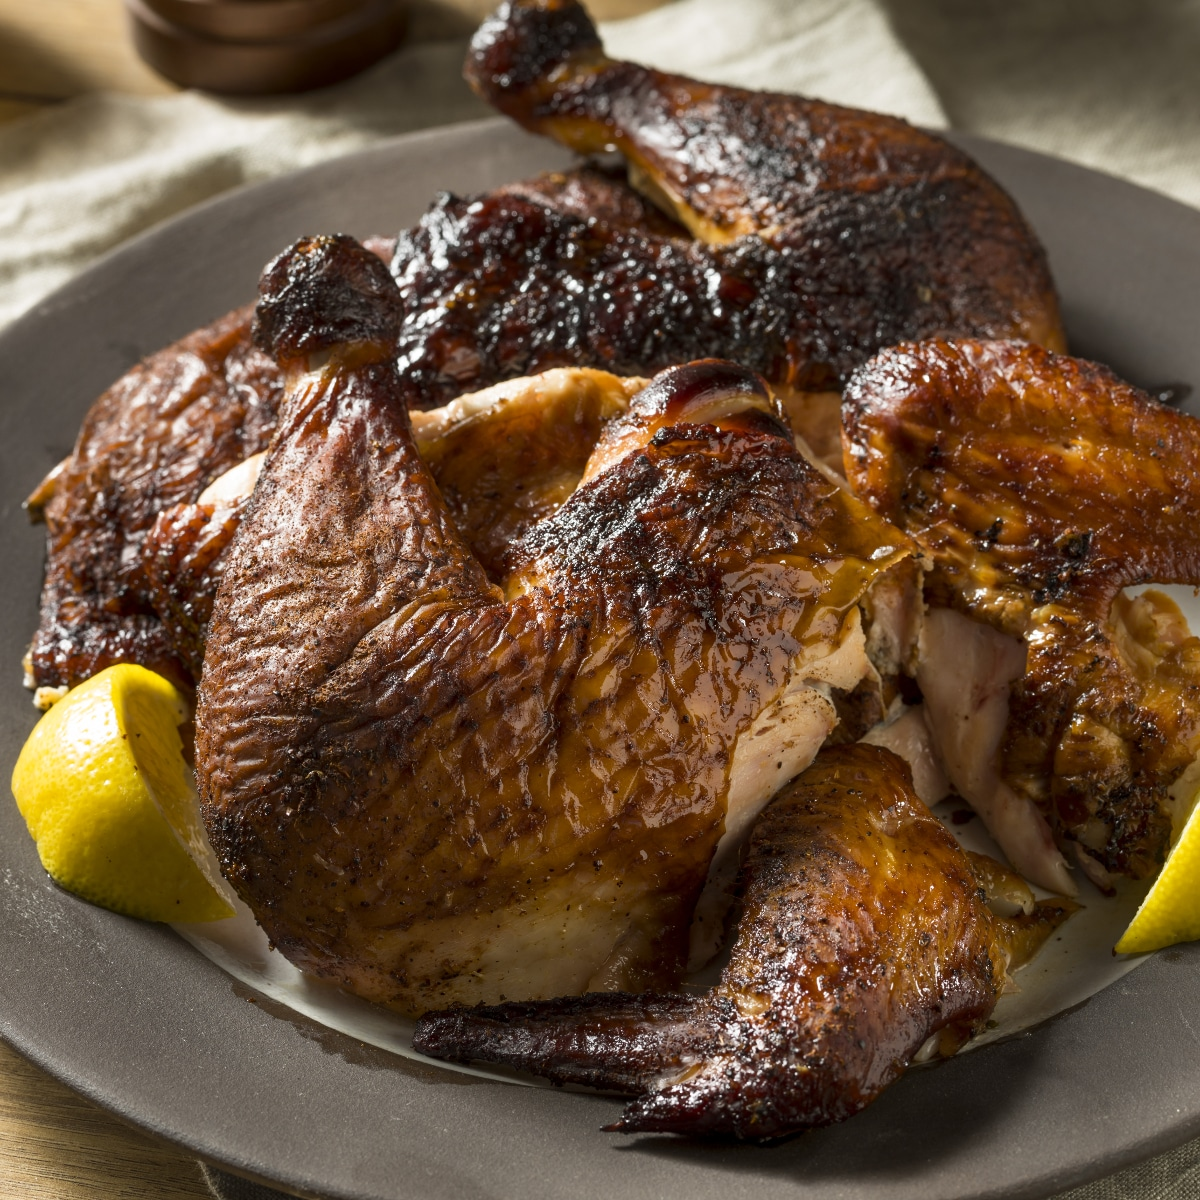 Smoked Whole Chicken carved and arranged on a serving platters. The chicken parts are browned and seasoned.